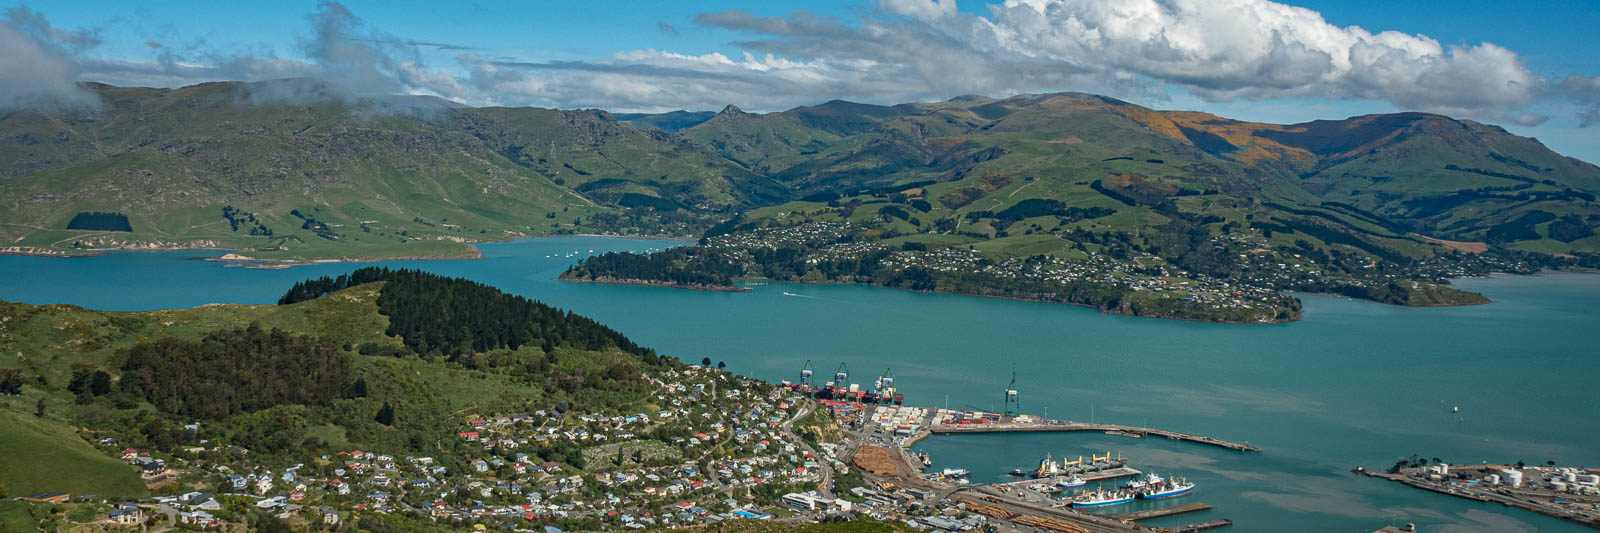 Dunedin to Christchurch, a South Island road trip in New Zealand